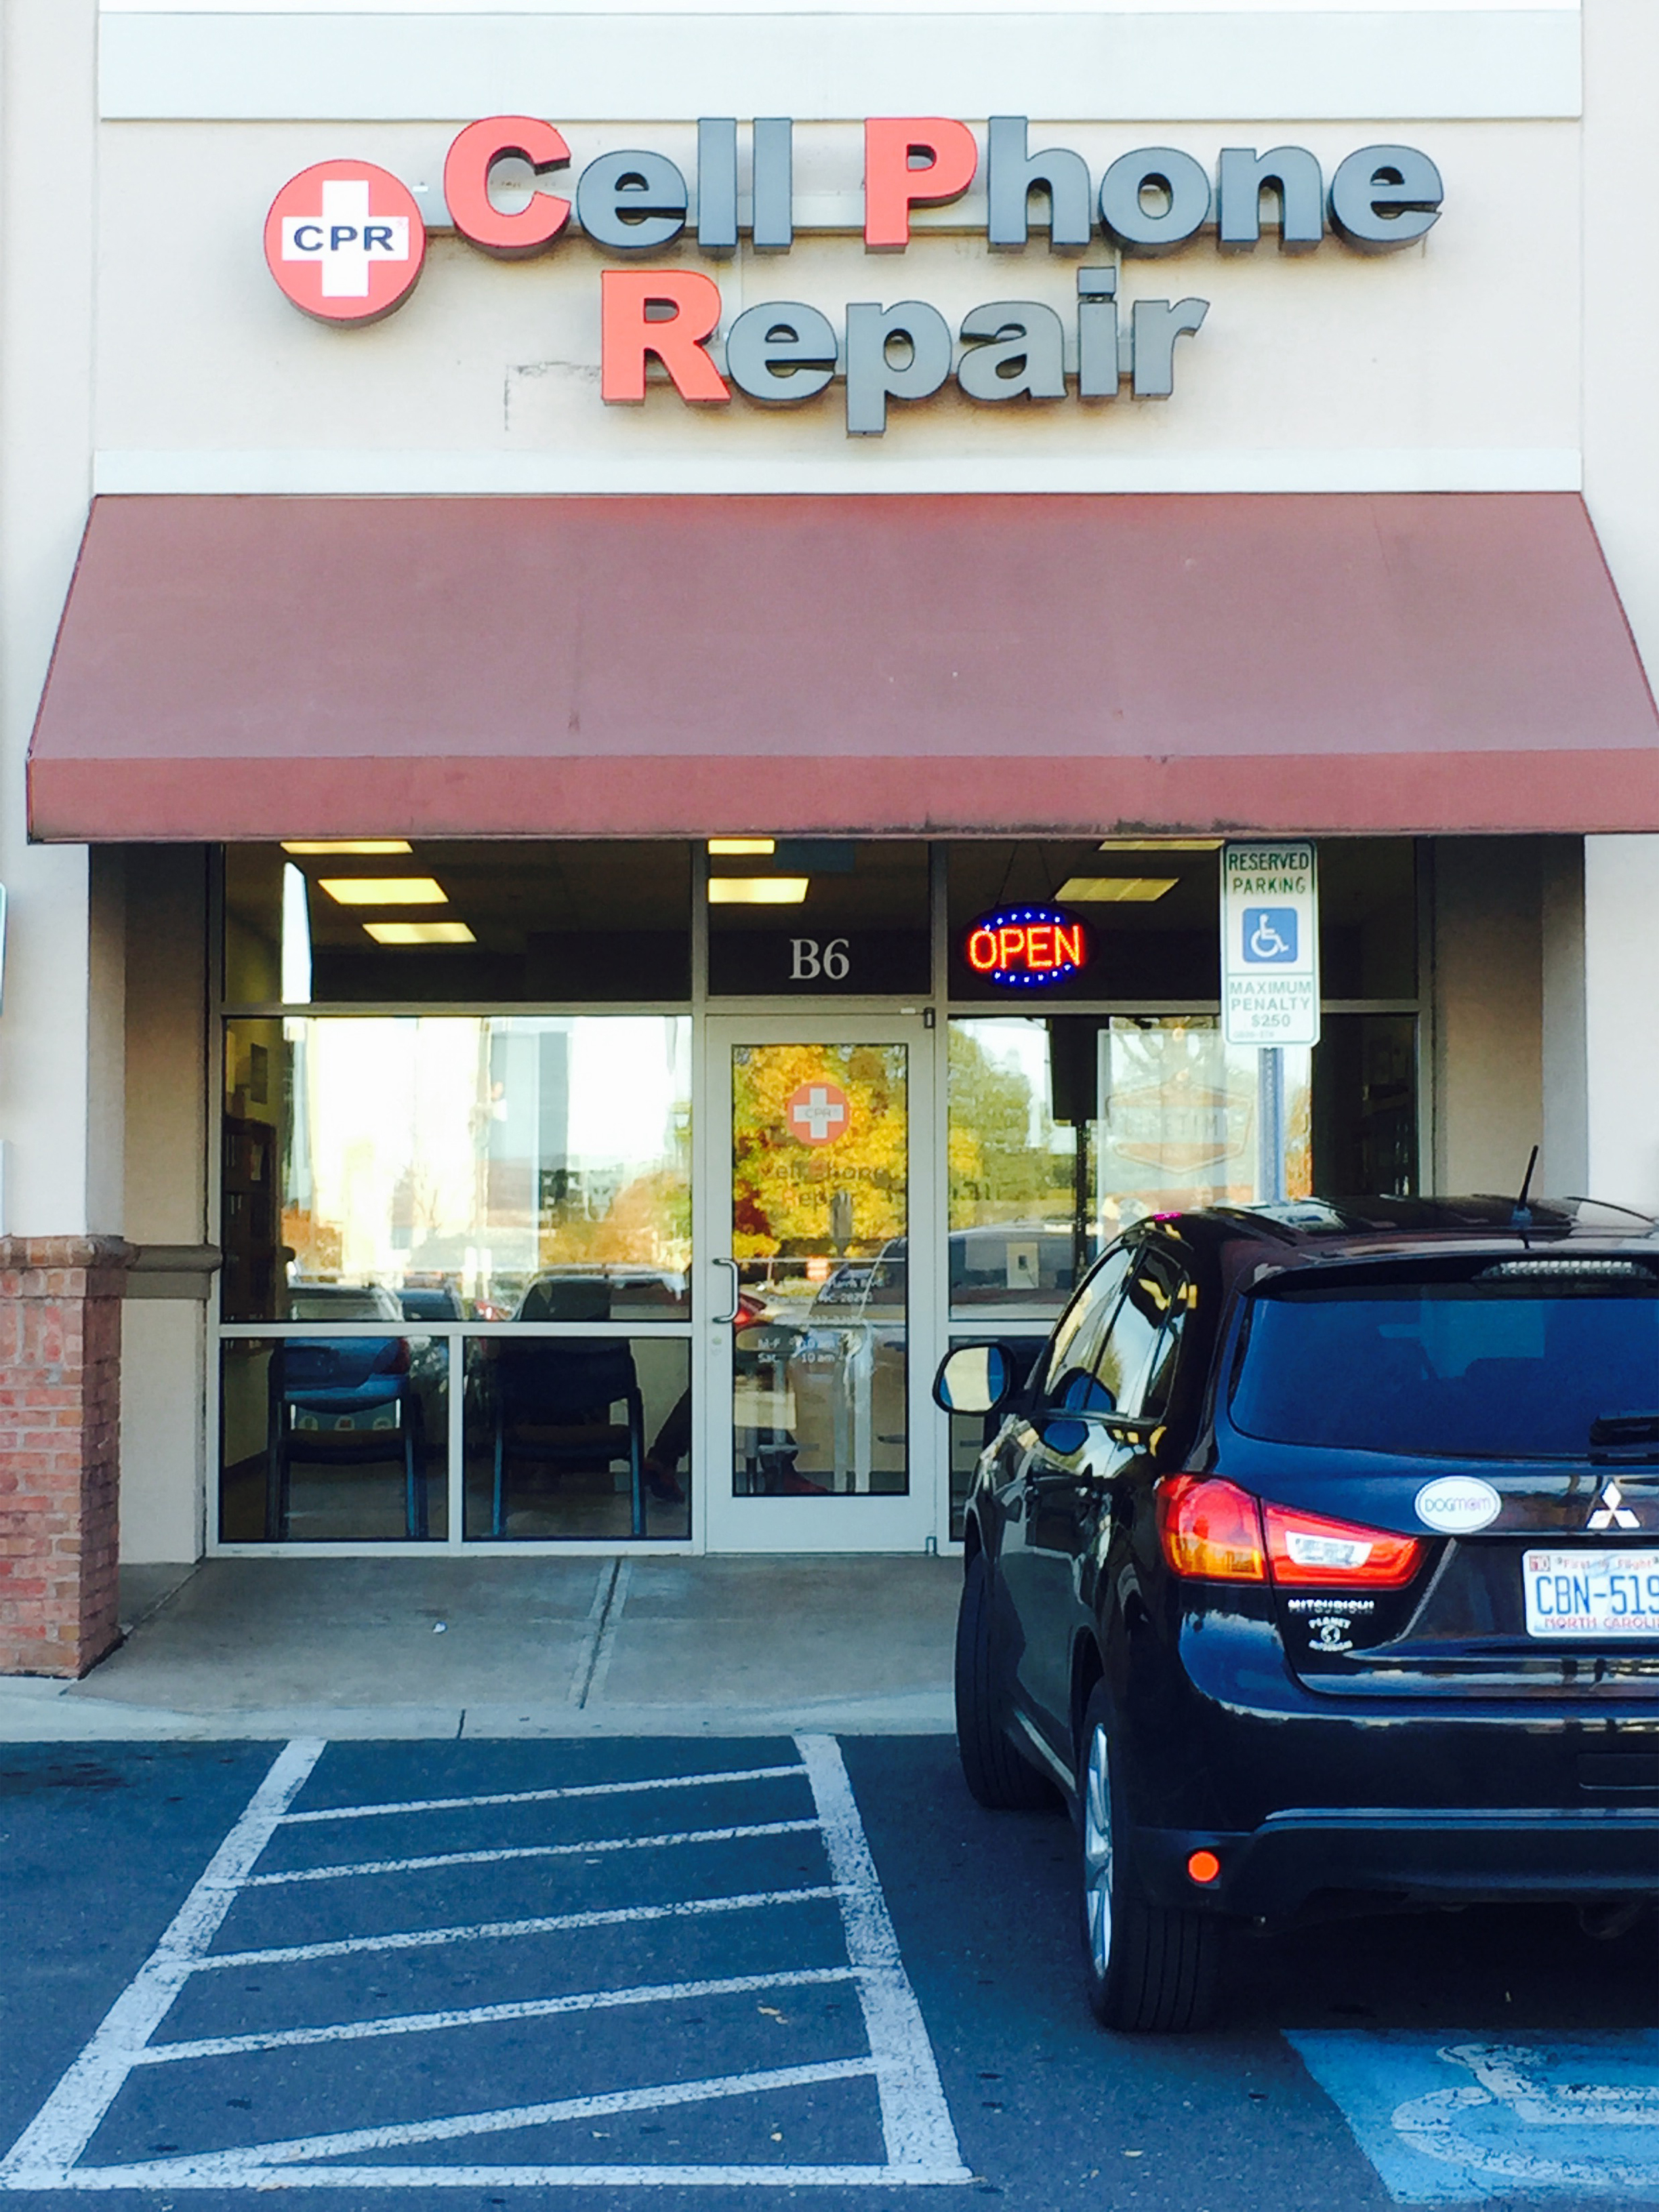 Cpr cell phone repair charlotte university city 230 east wt cpr cell phone repair charlotte university city 230 east wt harris blvd suite b 6 charlotte nc 28262 yp 1betcityfo Images